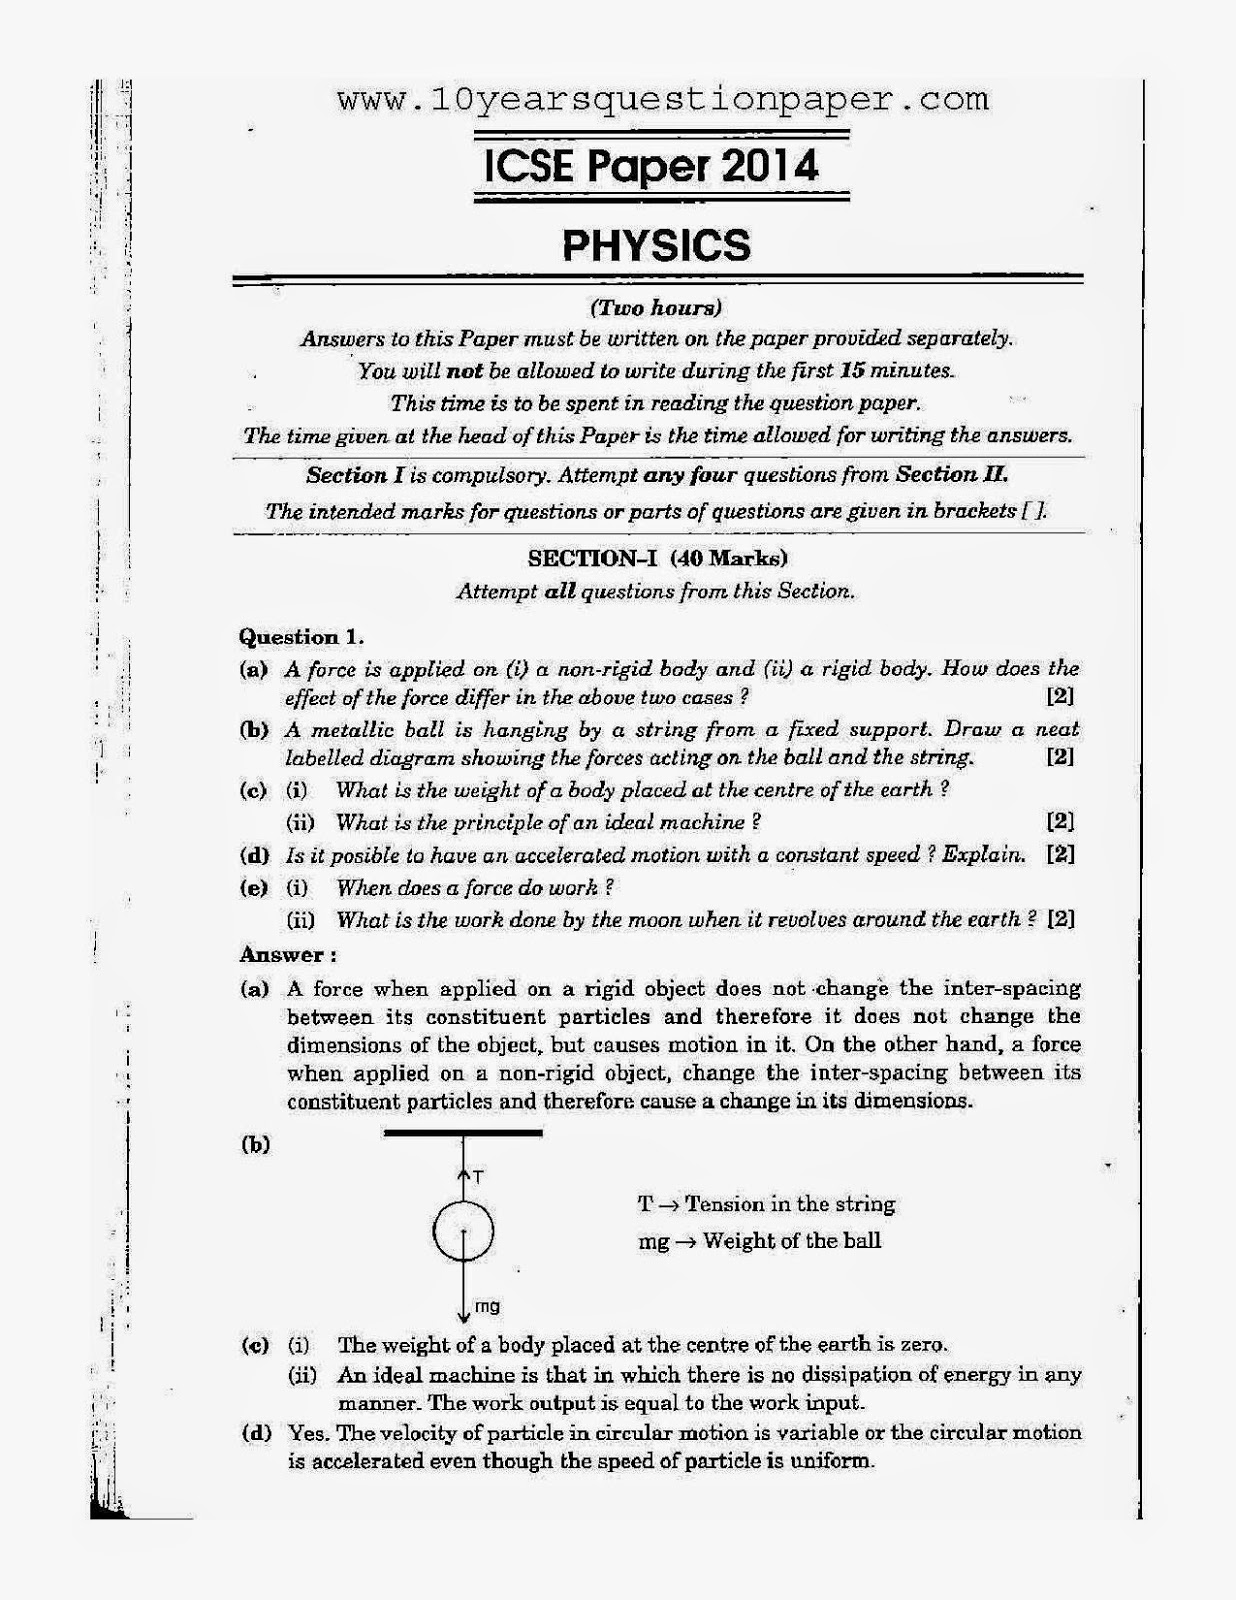 Icse physics exam 2014 class x solved question paper 10 years icse class 10th physics download solved question paper 2014 malvernweather Image collections